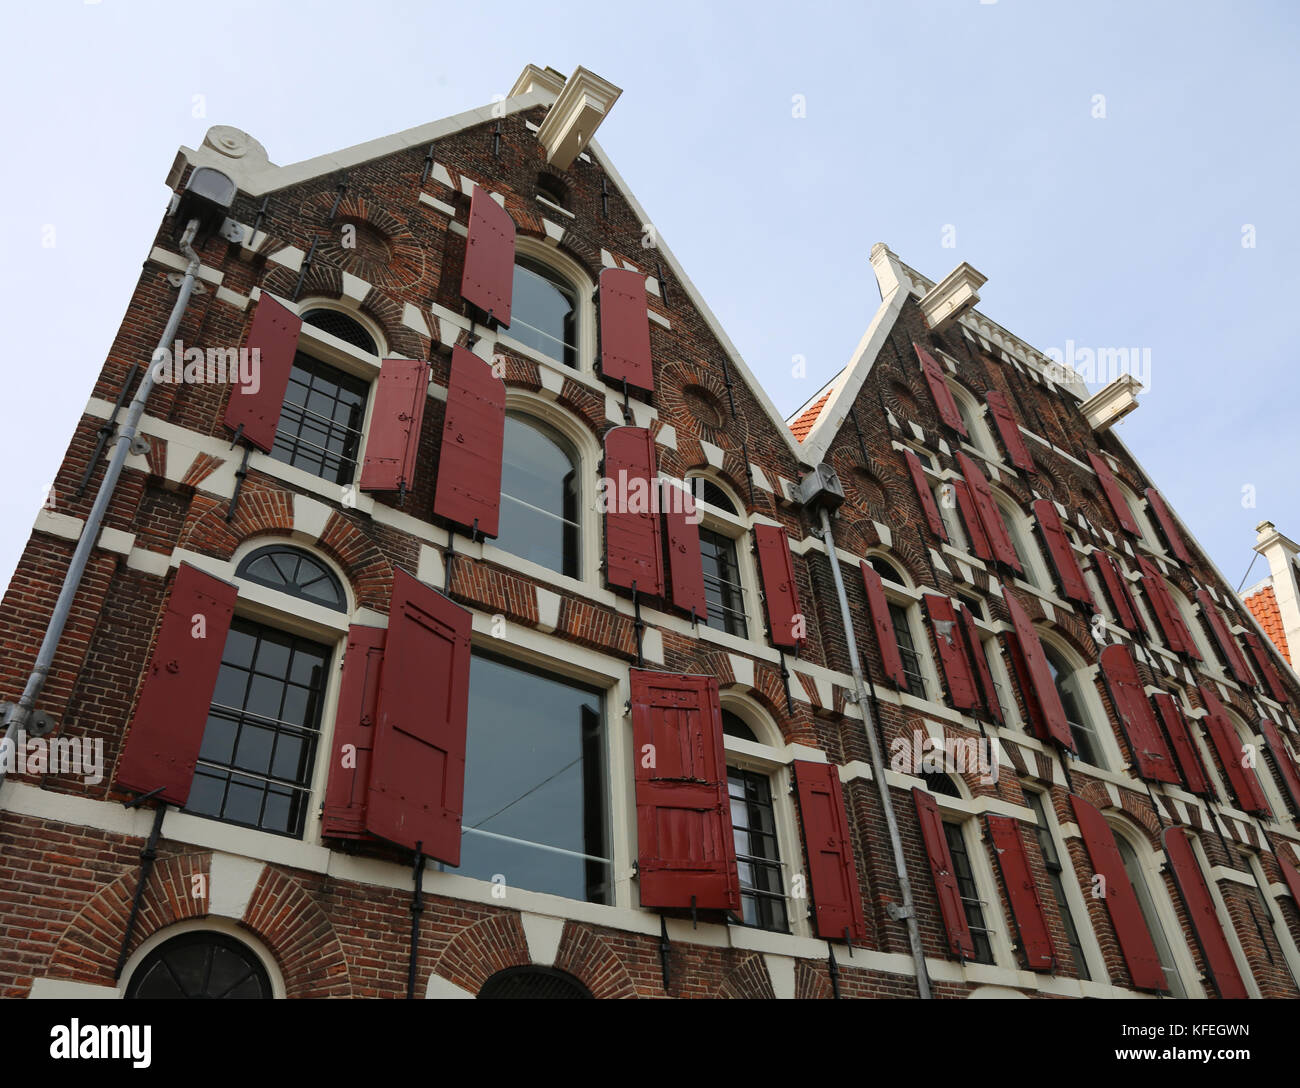 facade of Dutch house facades and under the roof the protruding hook to lift the furniture during removals - Stock Image